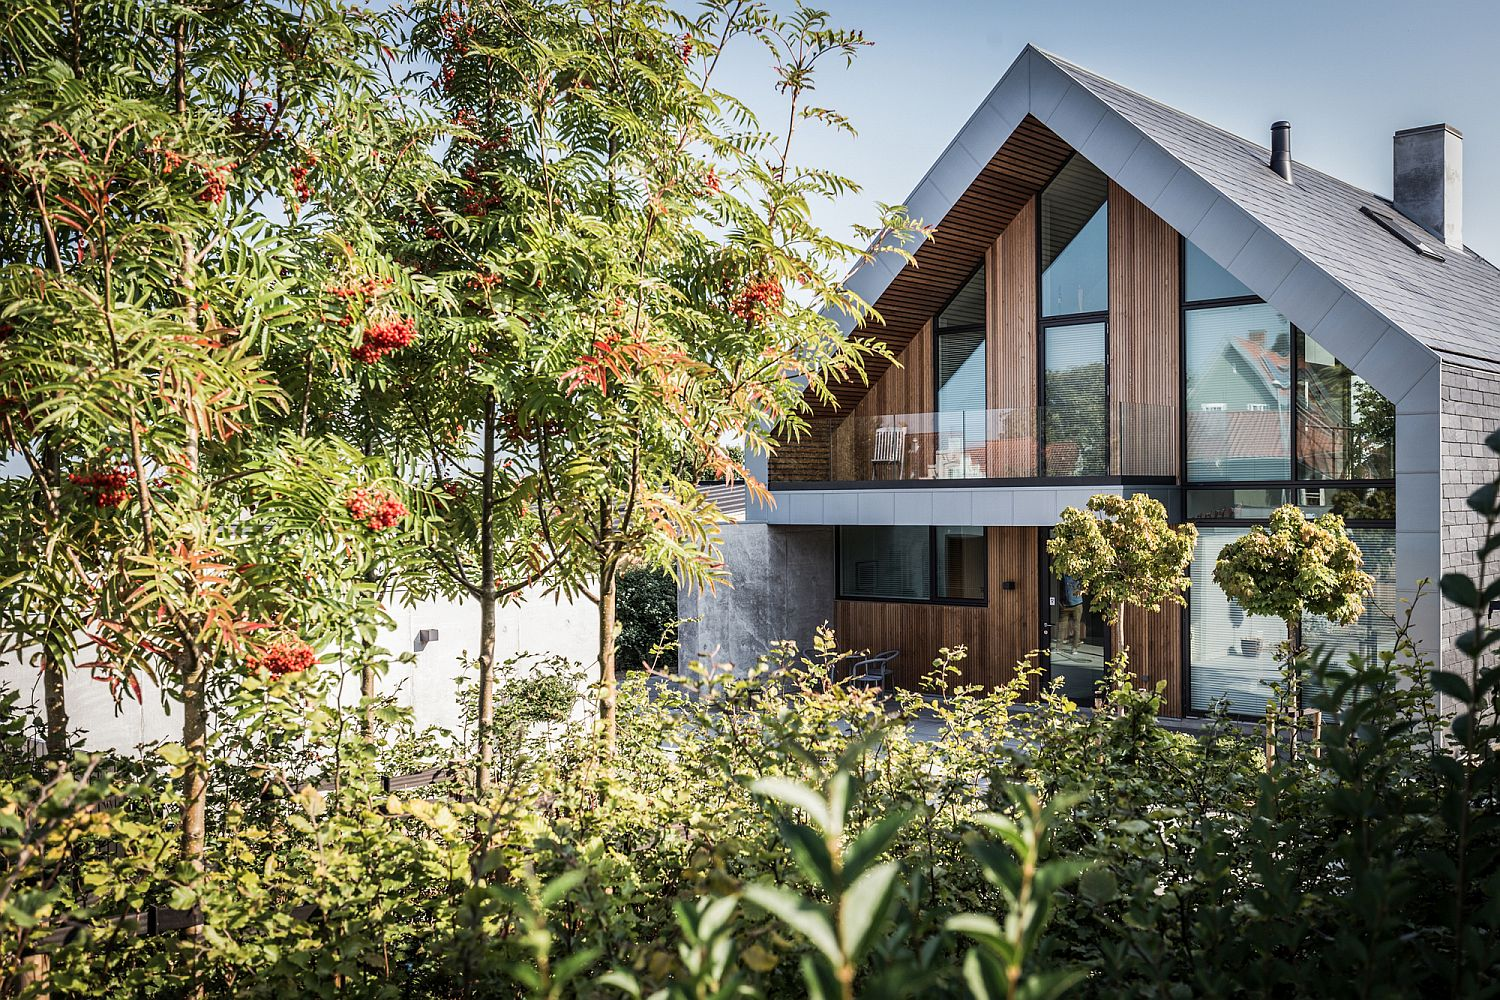 Slate, zinc and wooden strips create a stylish and unique residence in Denmark